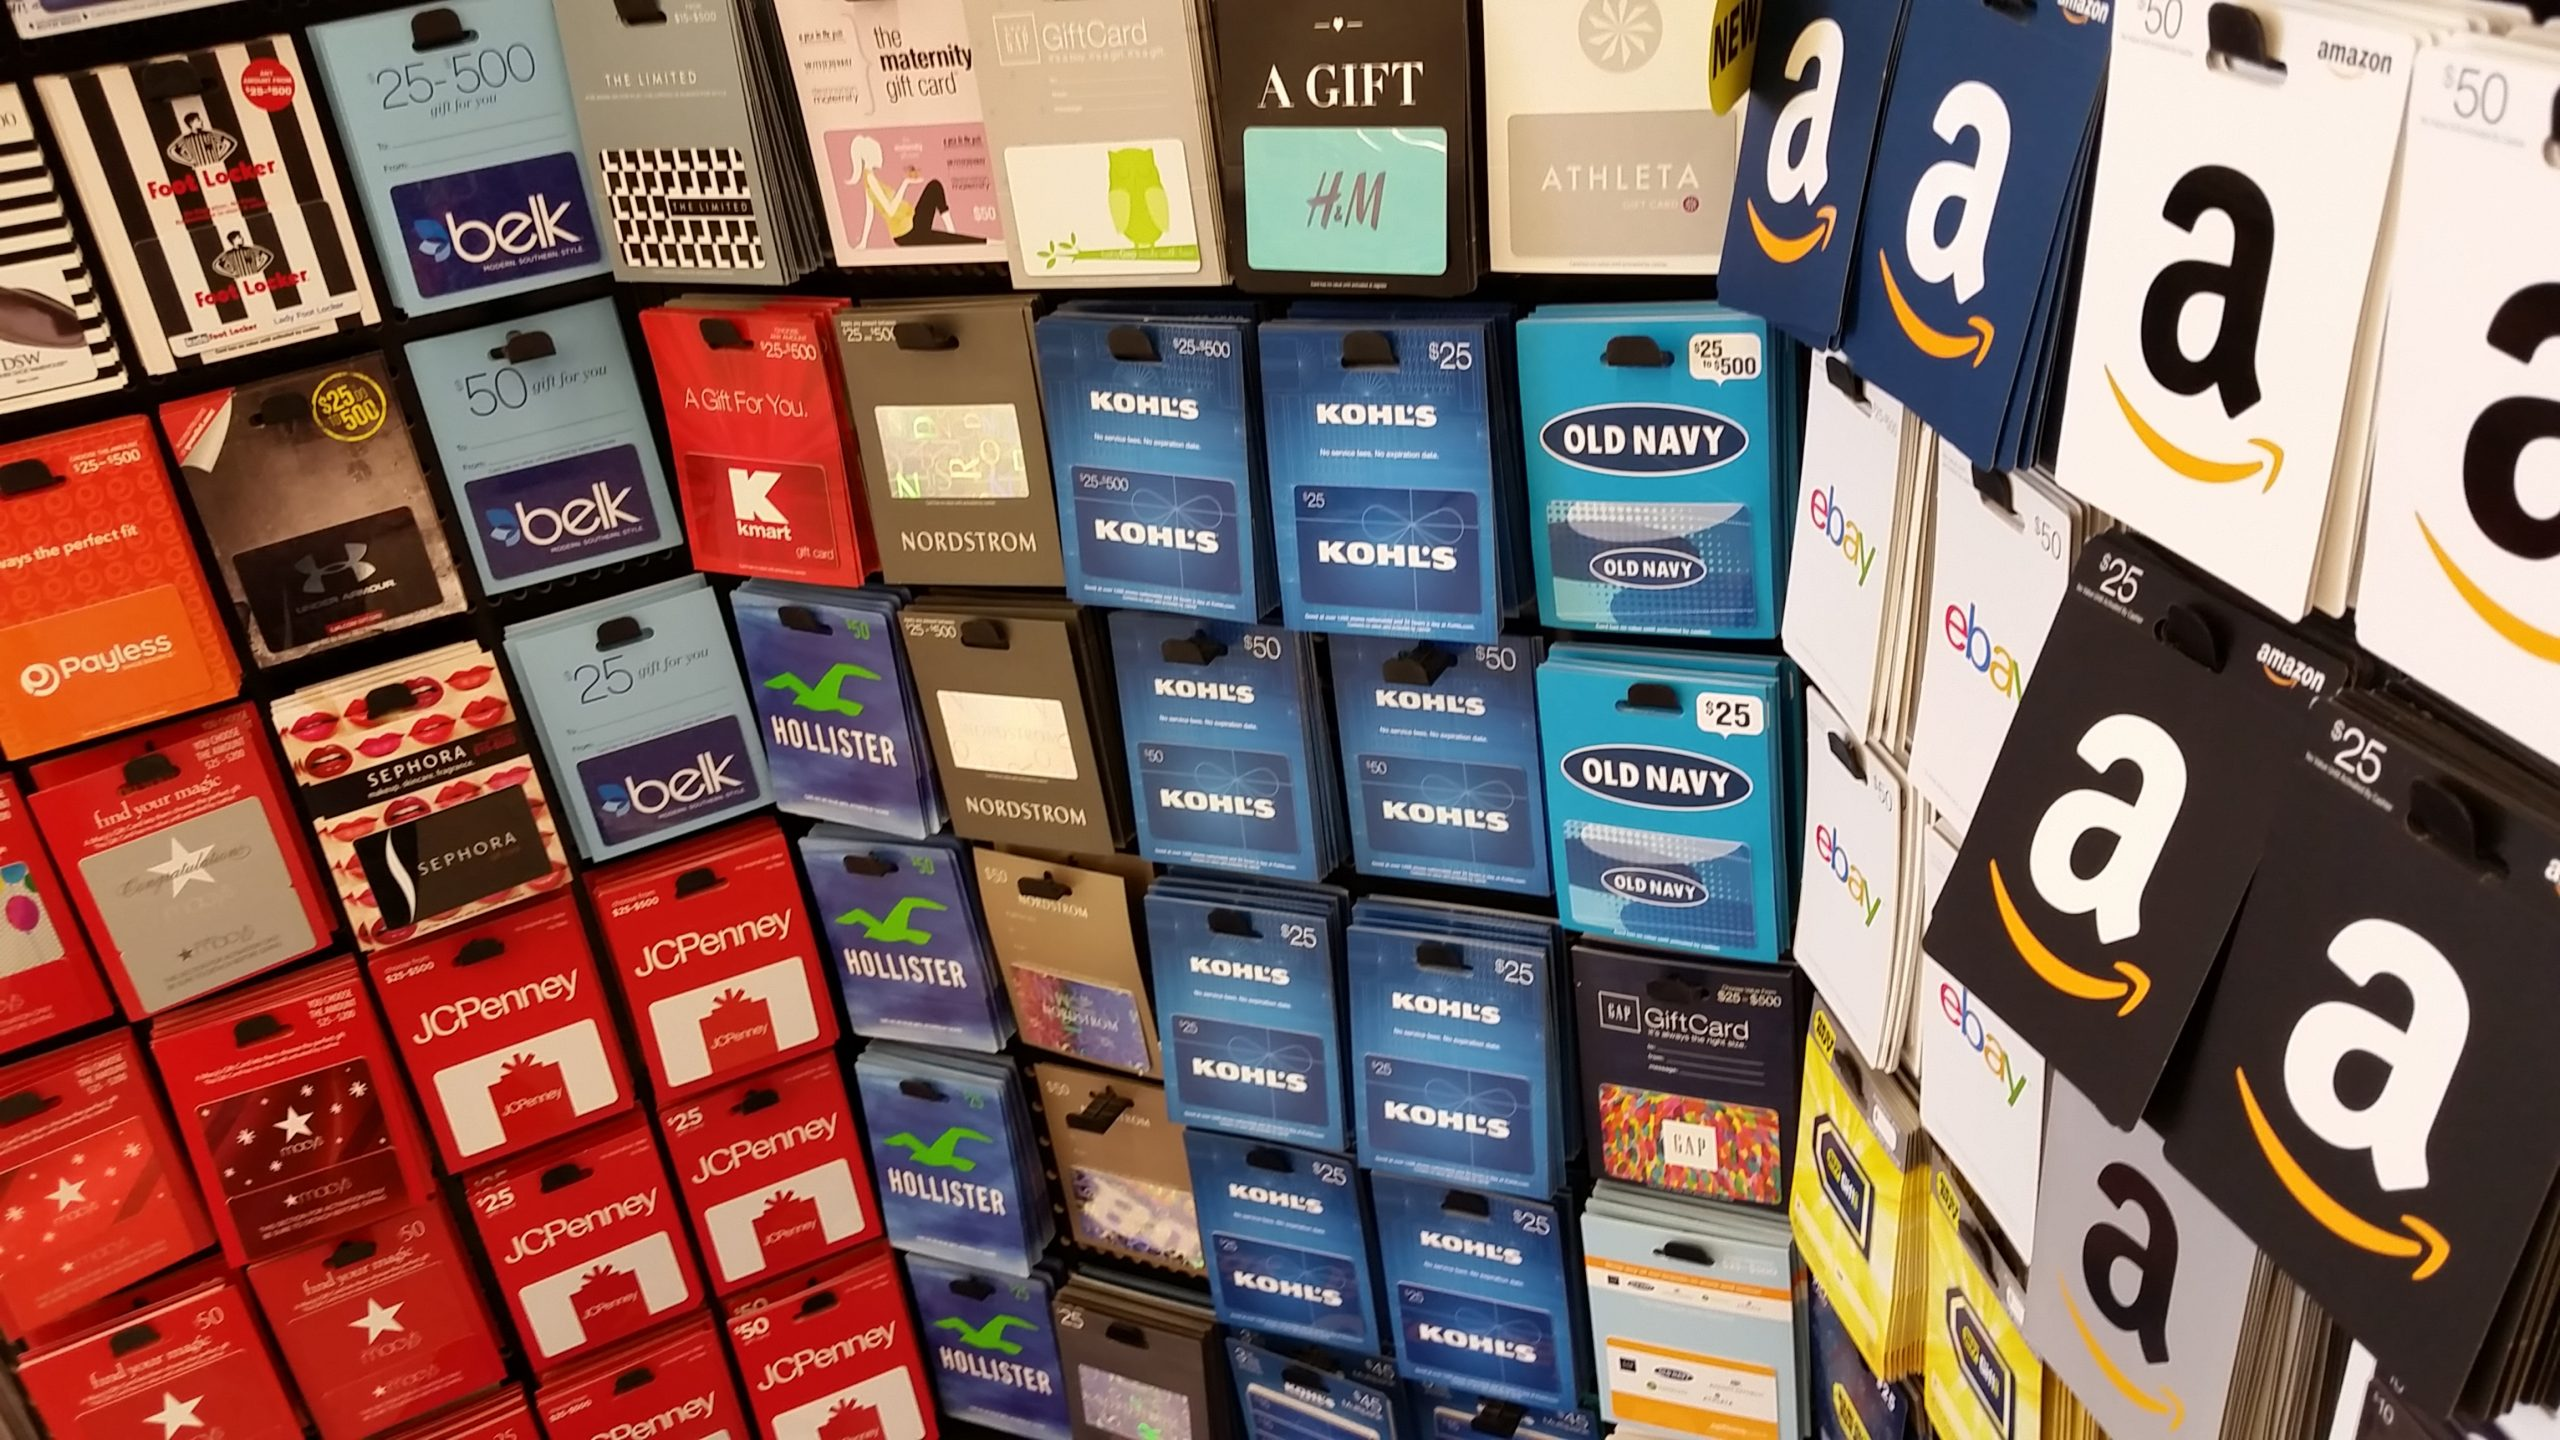 If You Could Have A Gift Card For Anything, What Would It Be?